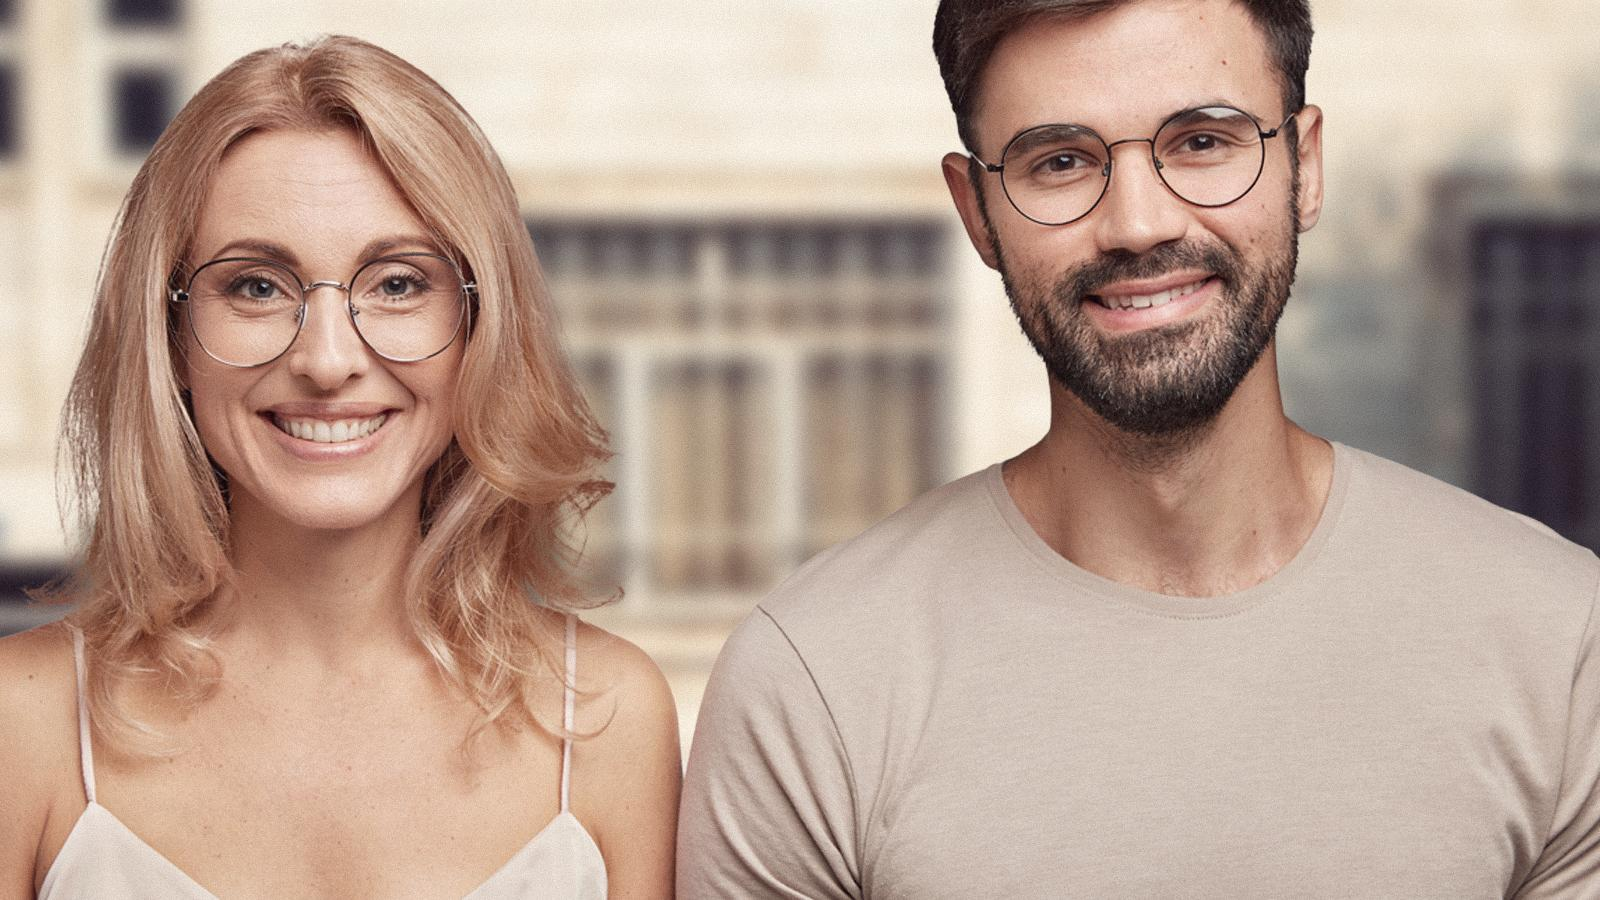 How To Transform Your Look With Glasses?